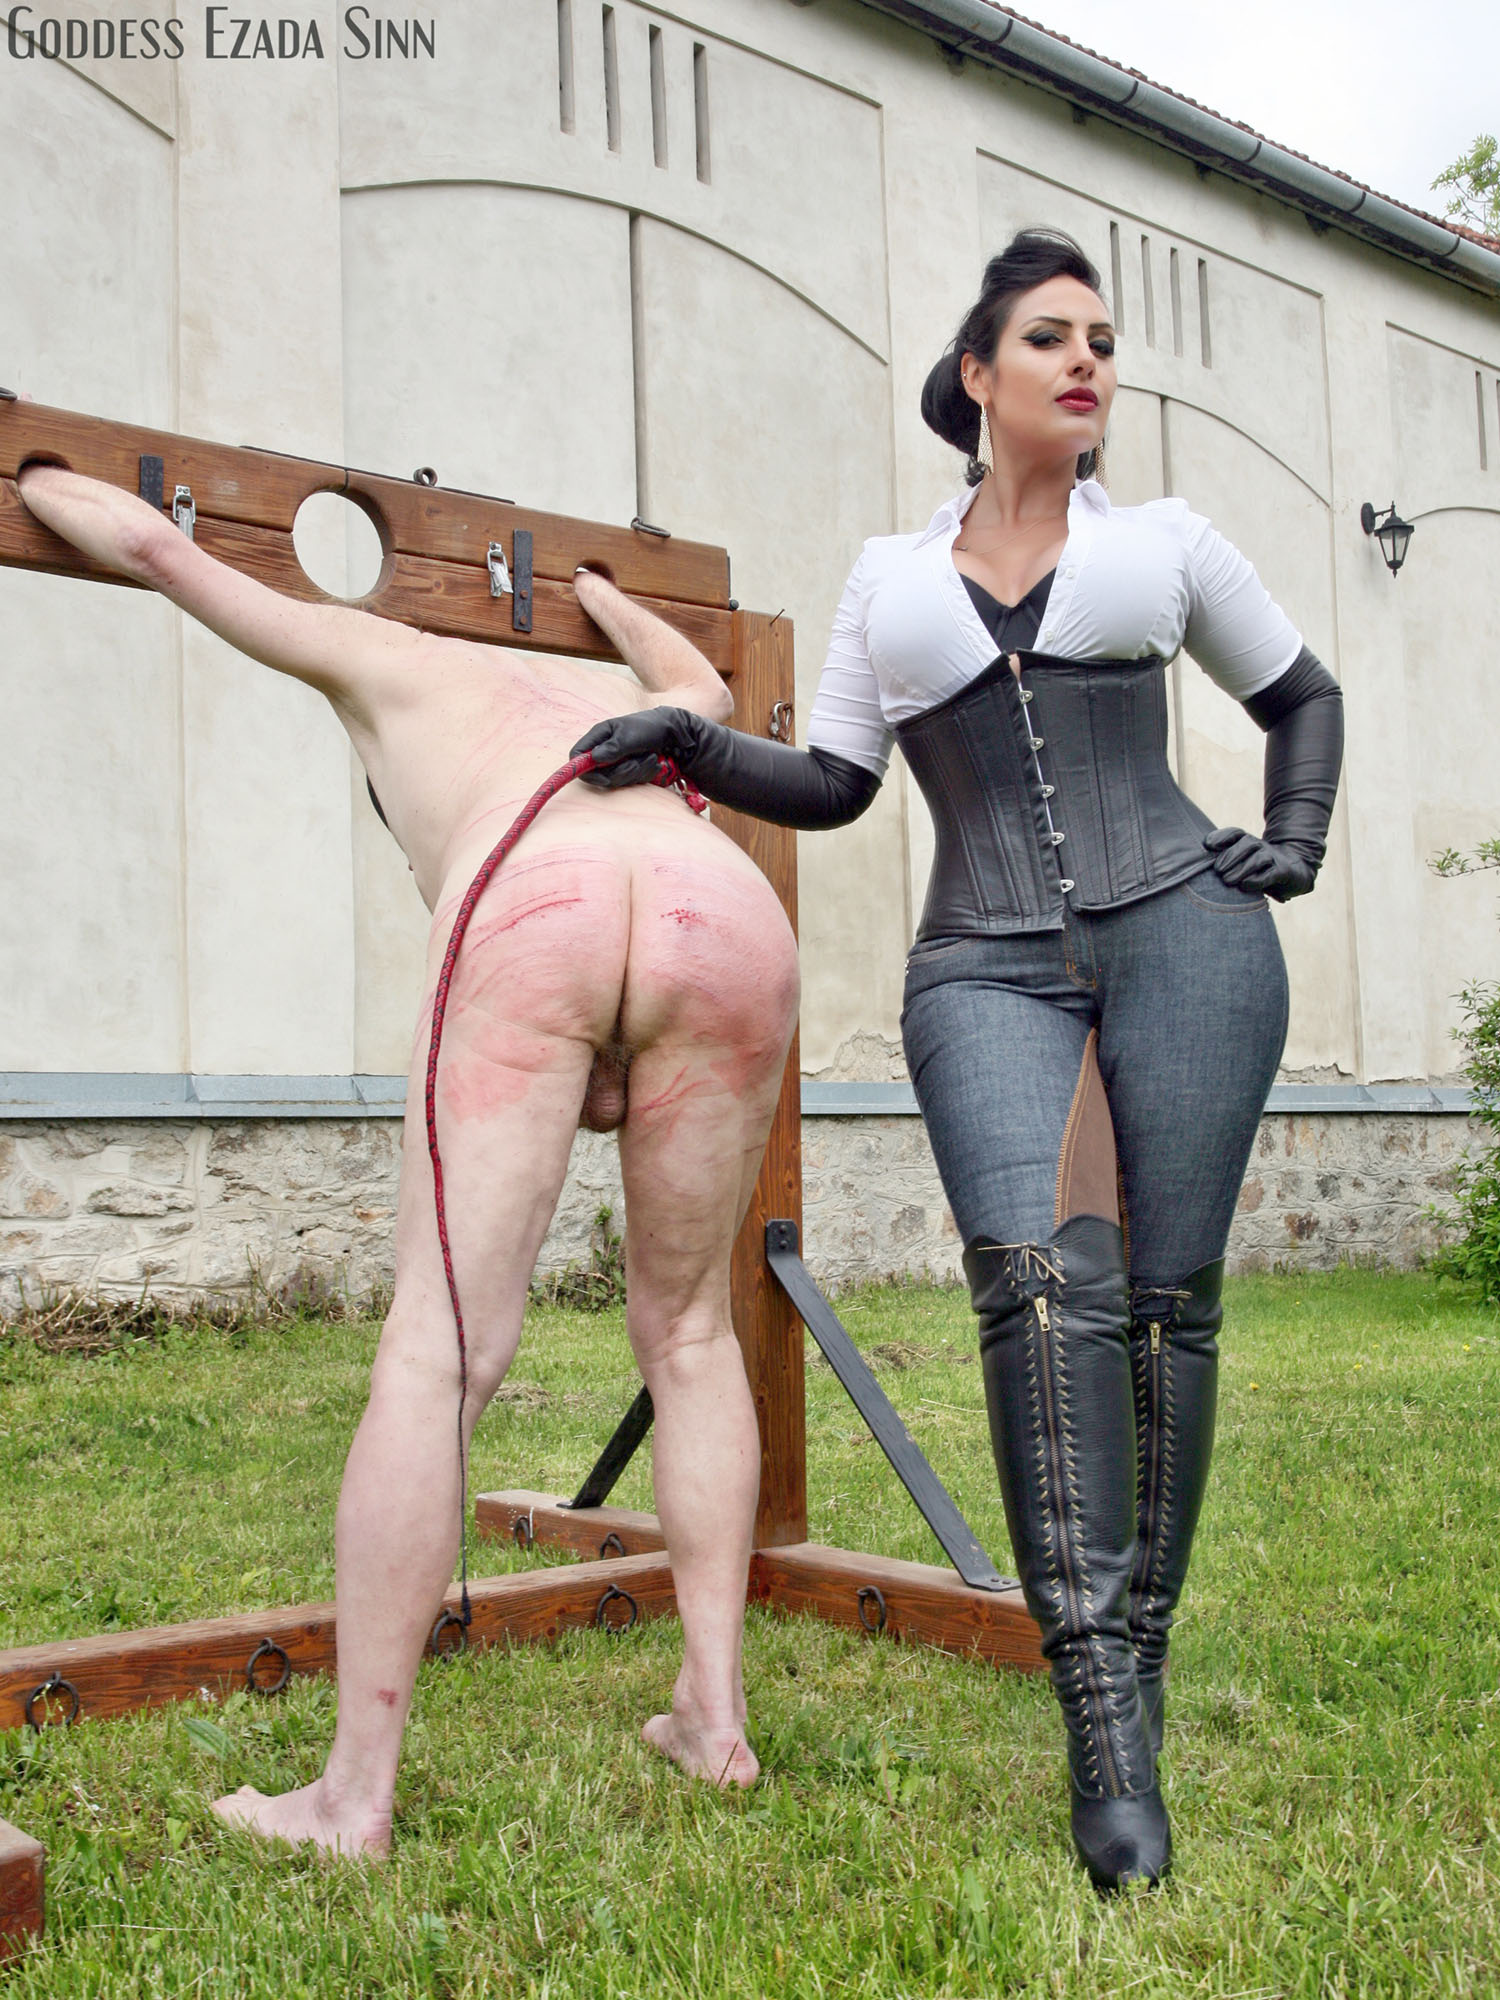 Worshiping her goddess at home while she039s surfing internet - 2 8